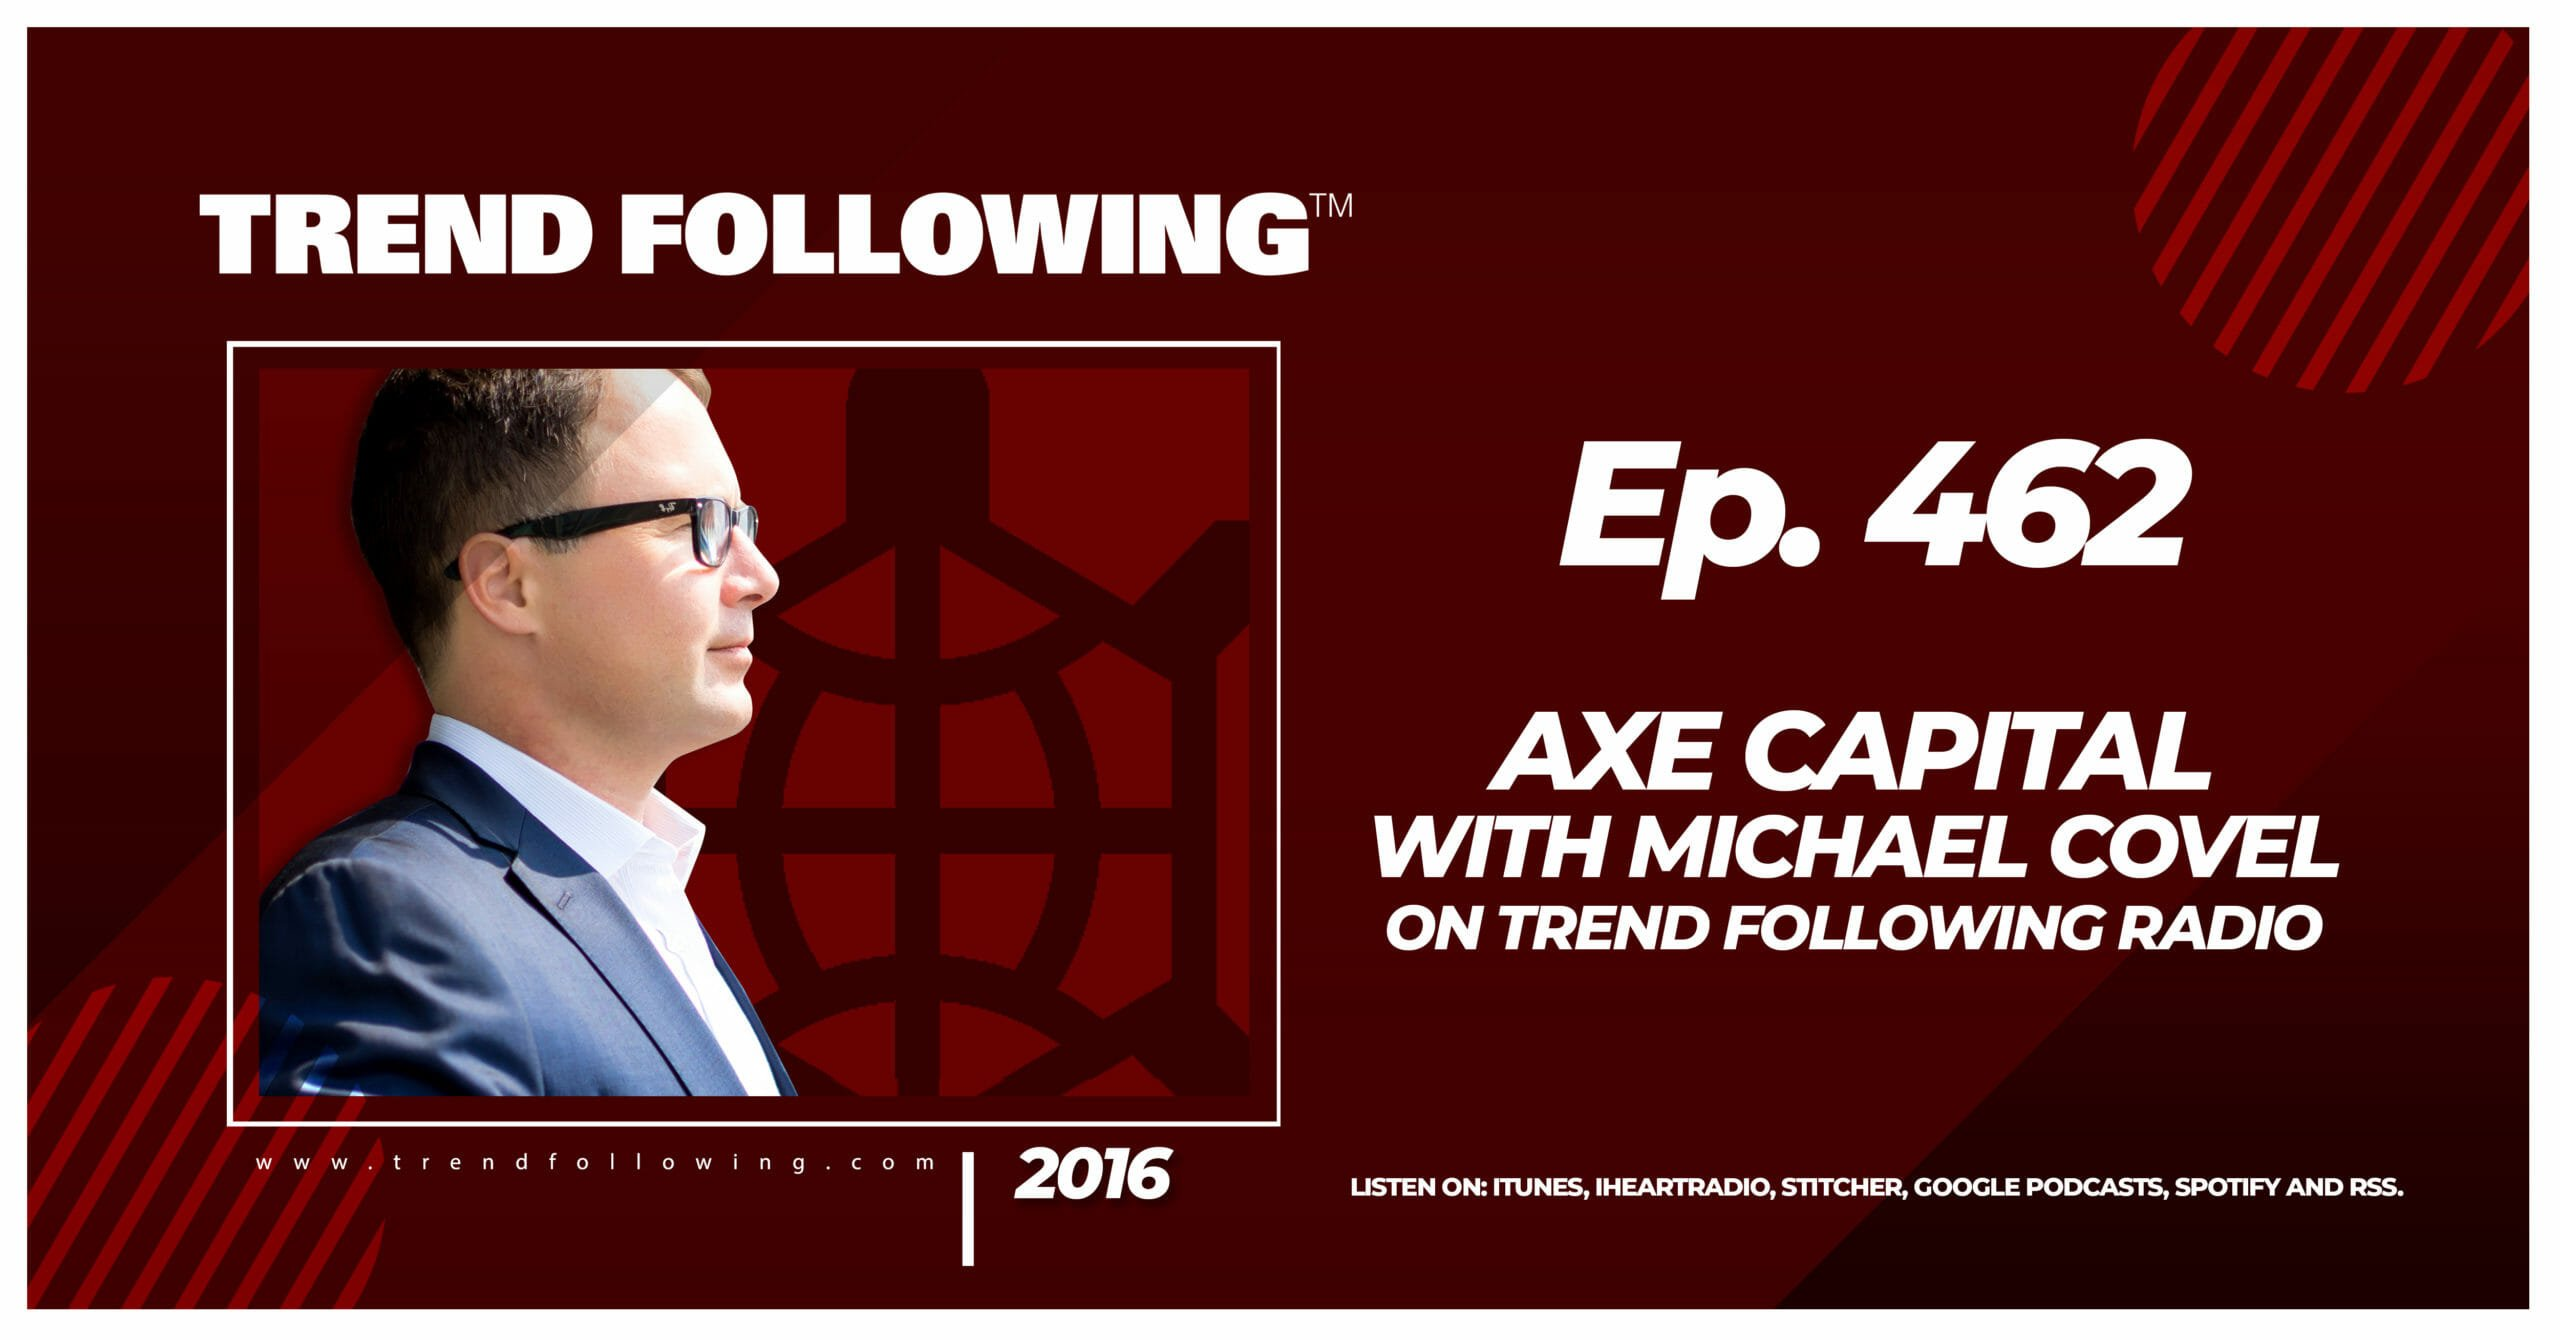 Axe Capital with Michael Covel on Trend Following Radio